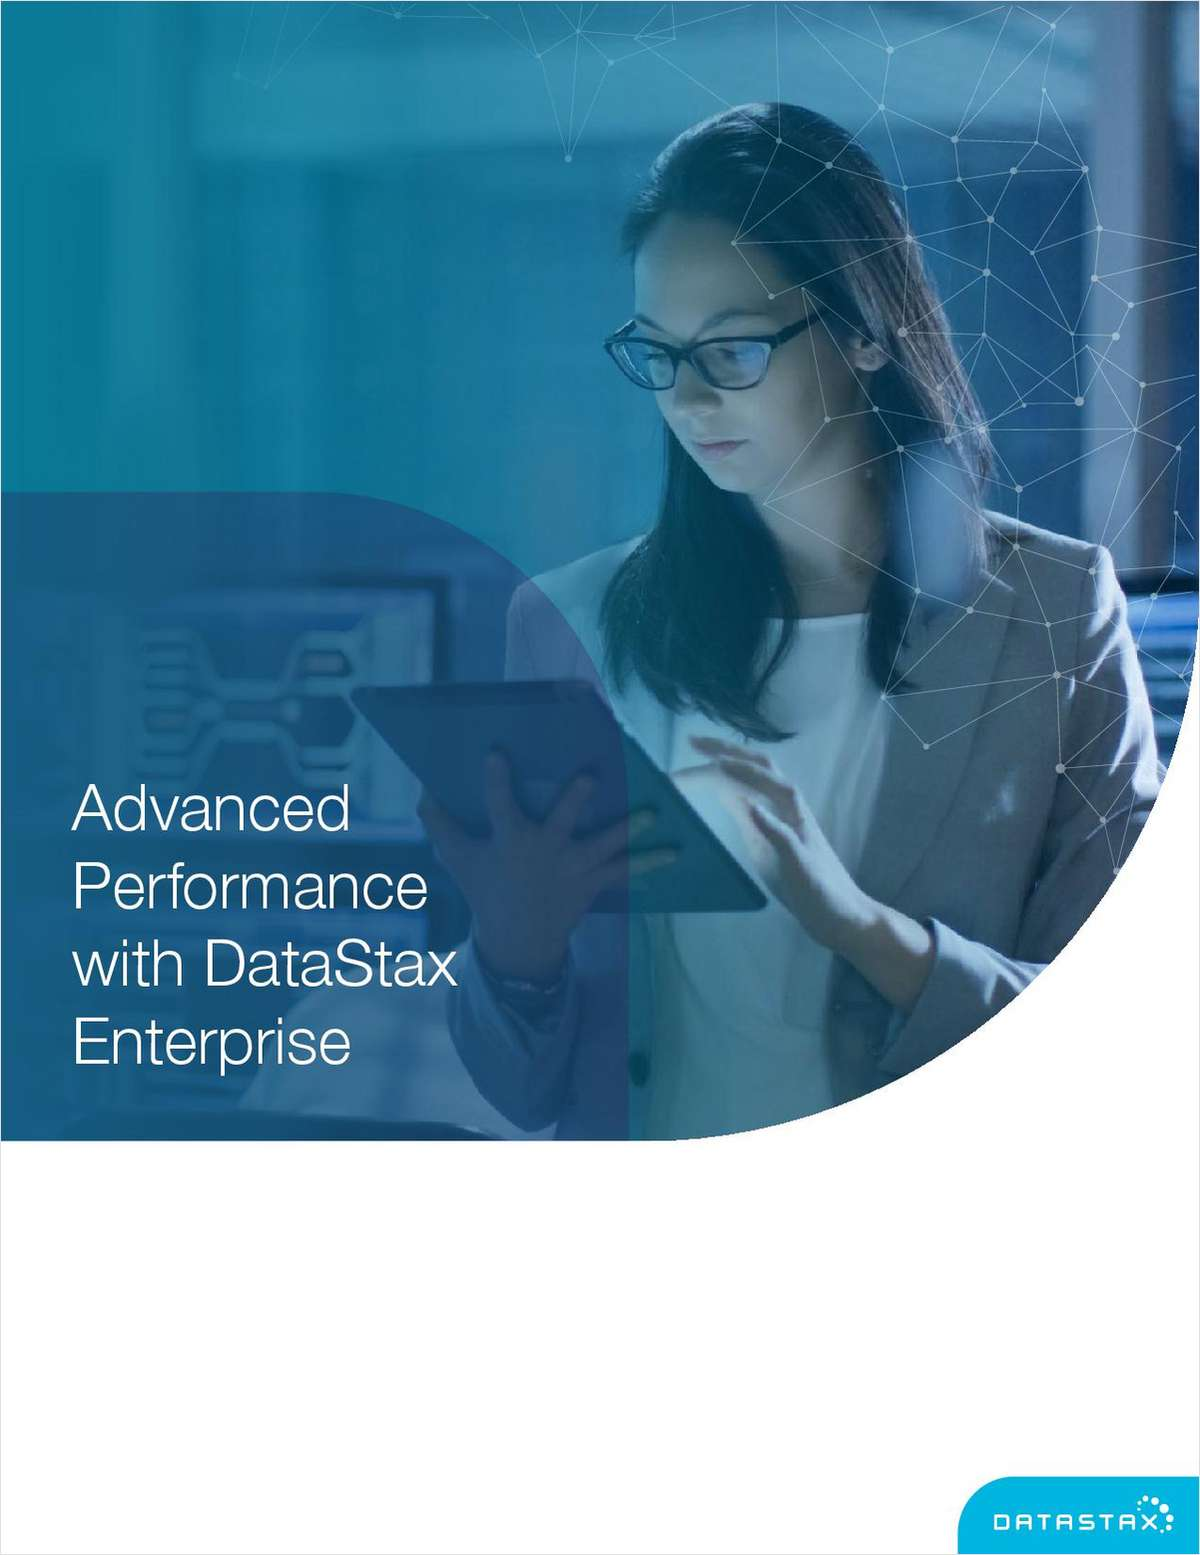 DataStax Enterprise 6 Advanced Performance, Free DataStax White Paper